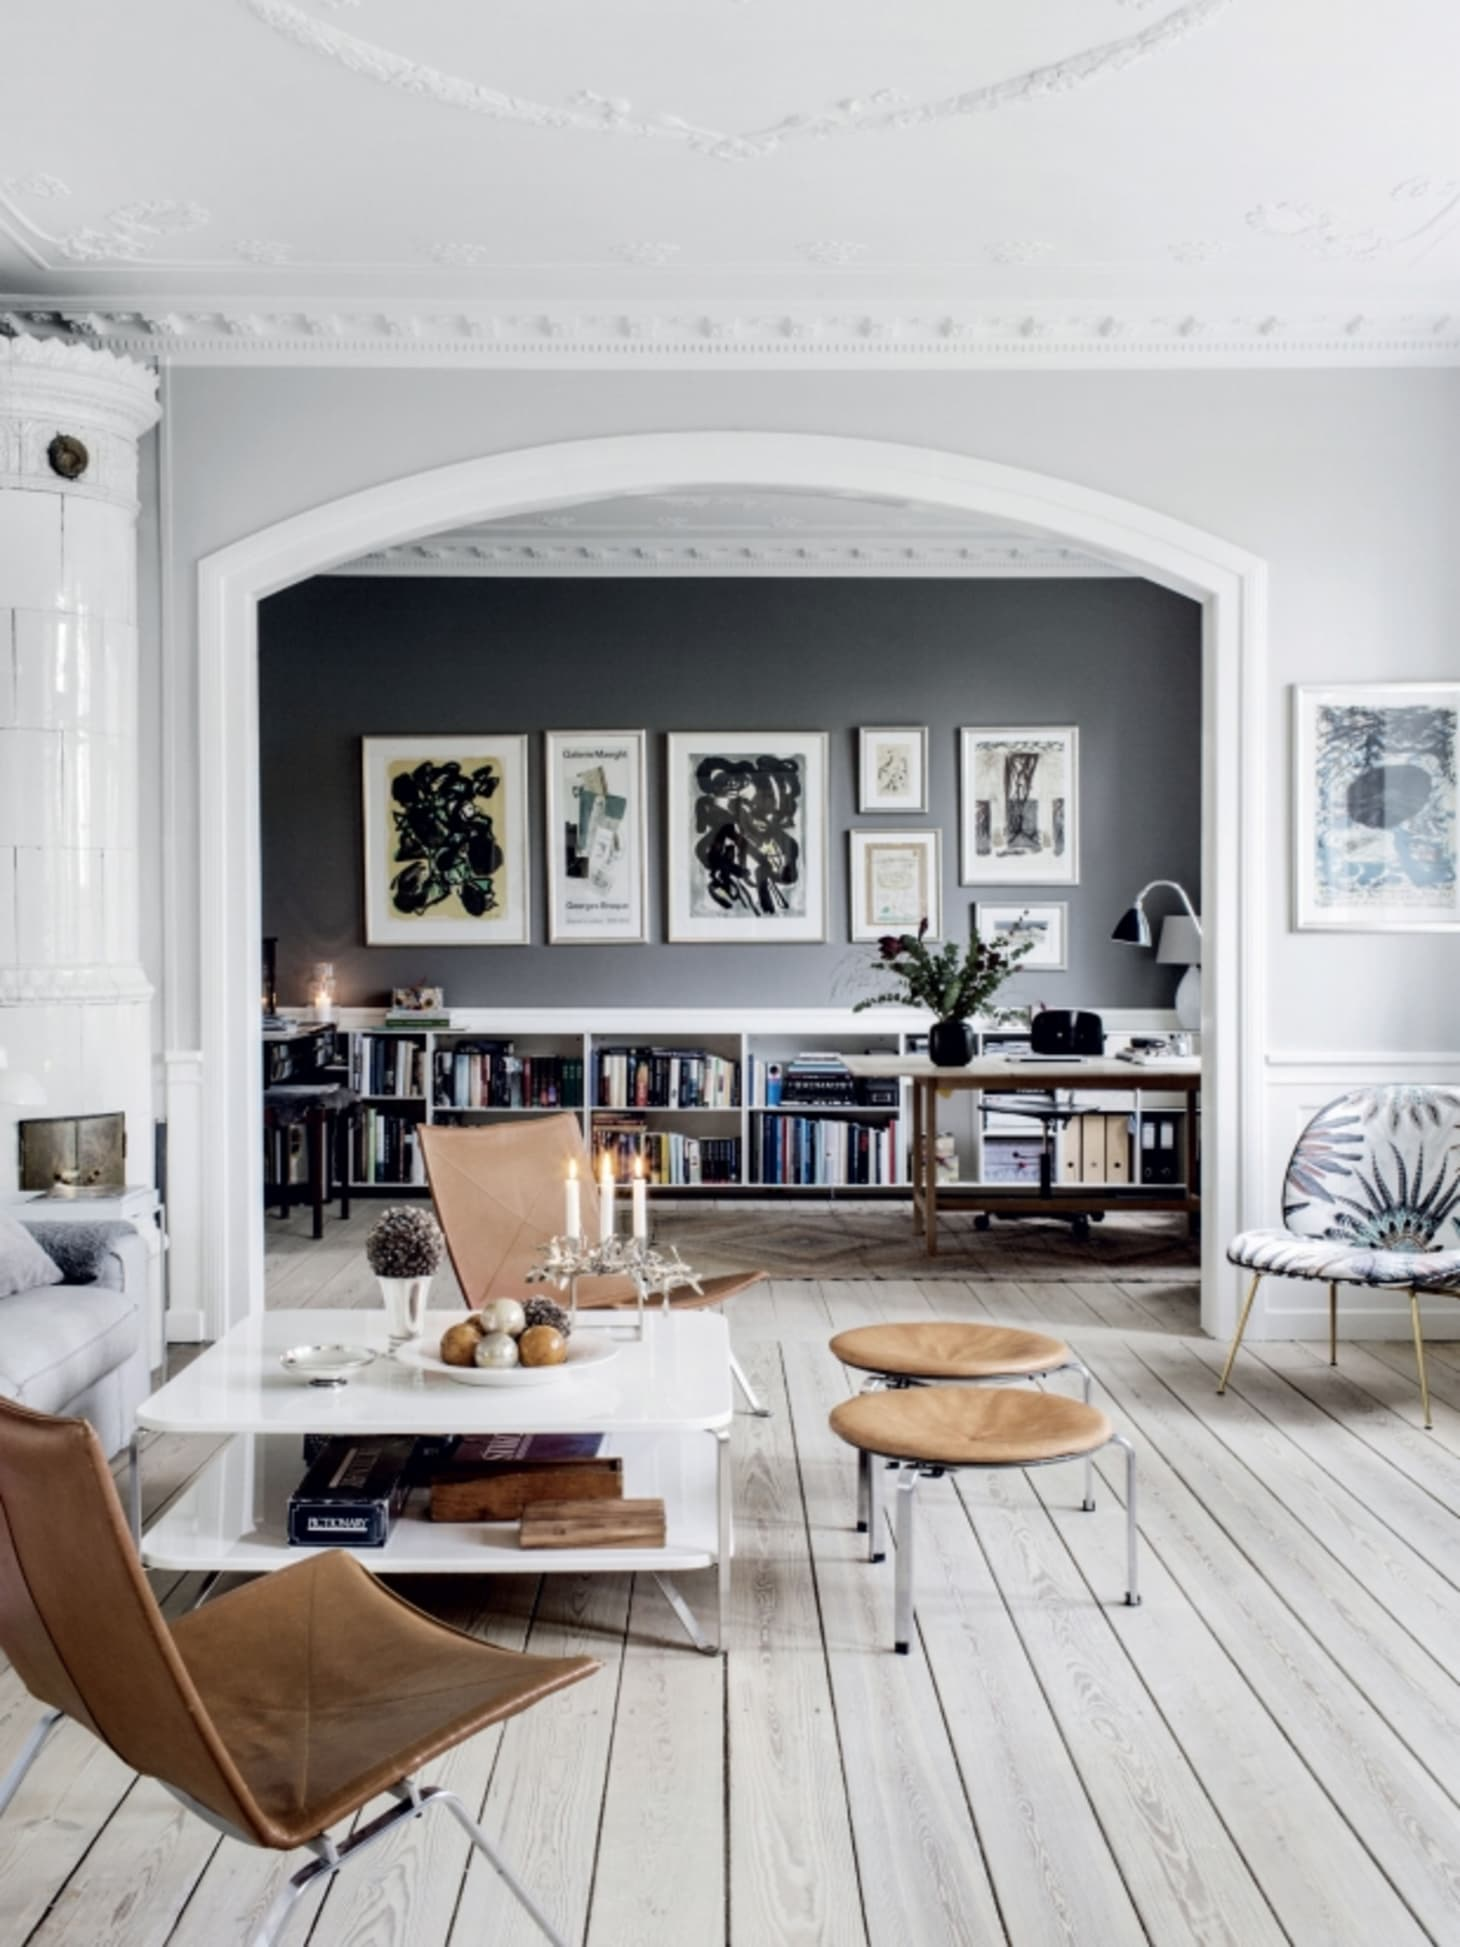 How To Decorate Your Home With Personality: Discover Your Home's Decor Personality: 11 Organic Modern Room Inspirations